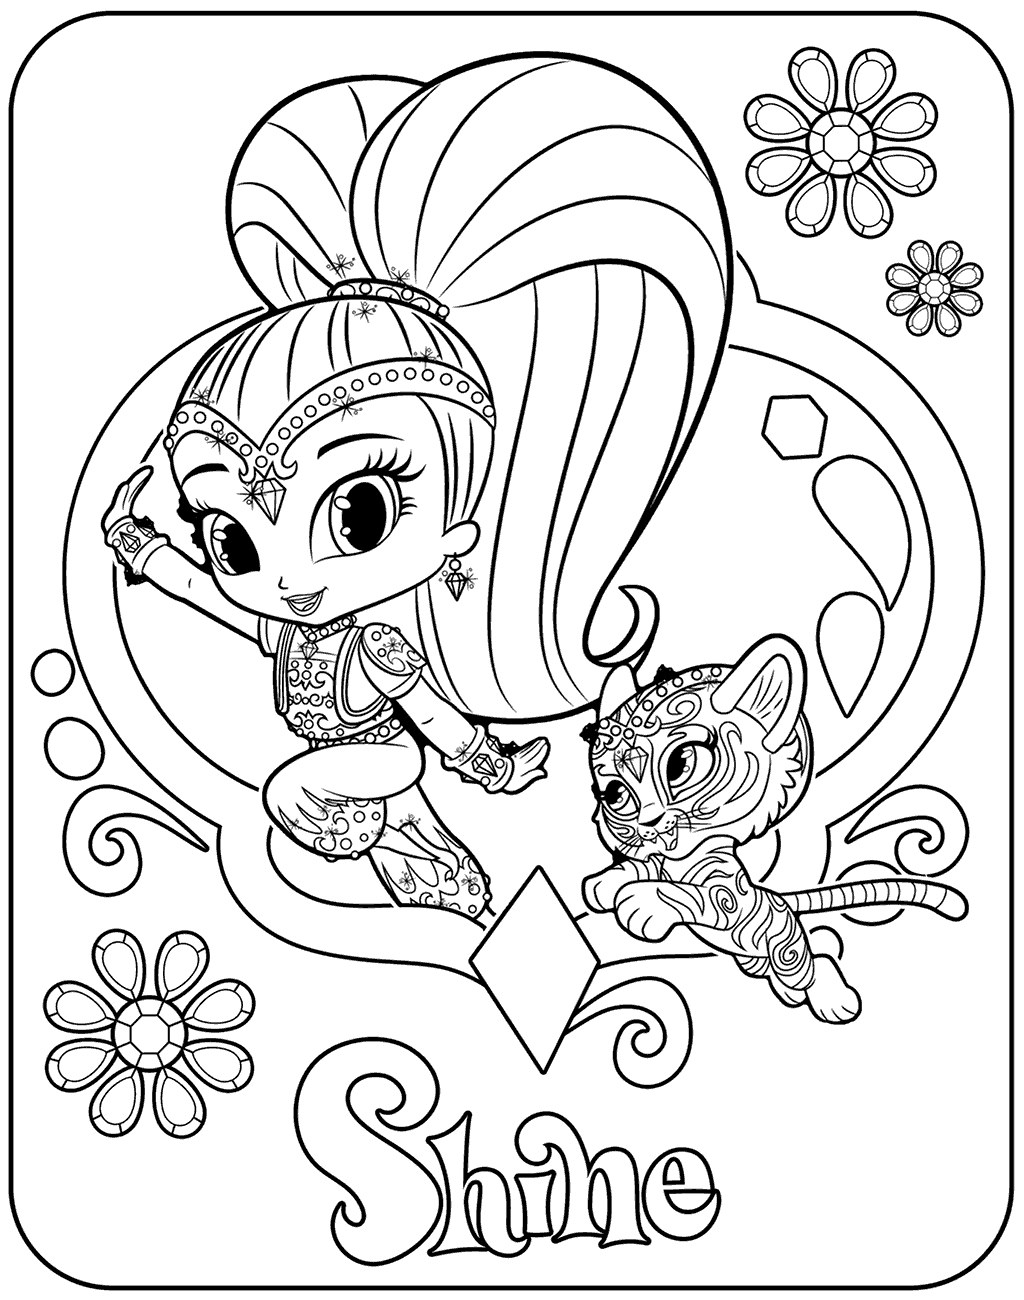 Shine With Nahal Shimmer And Shine Coloring Pages Coloring Pages Coloring Books Free Coloring Pages